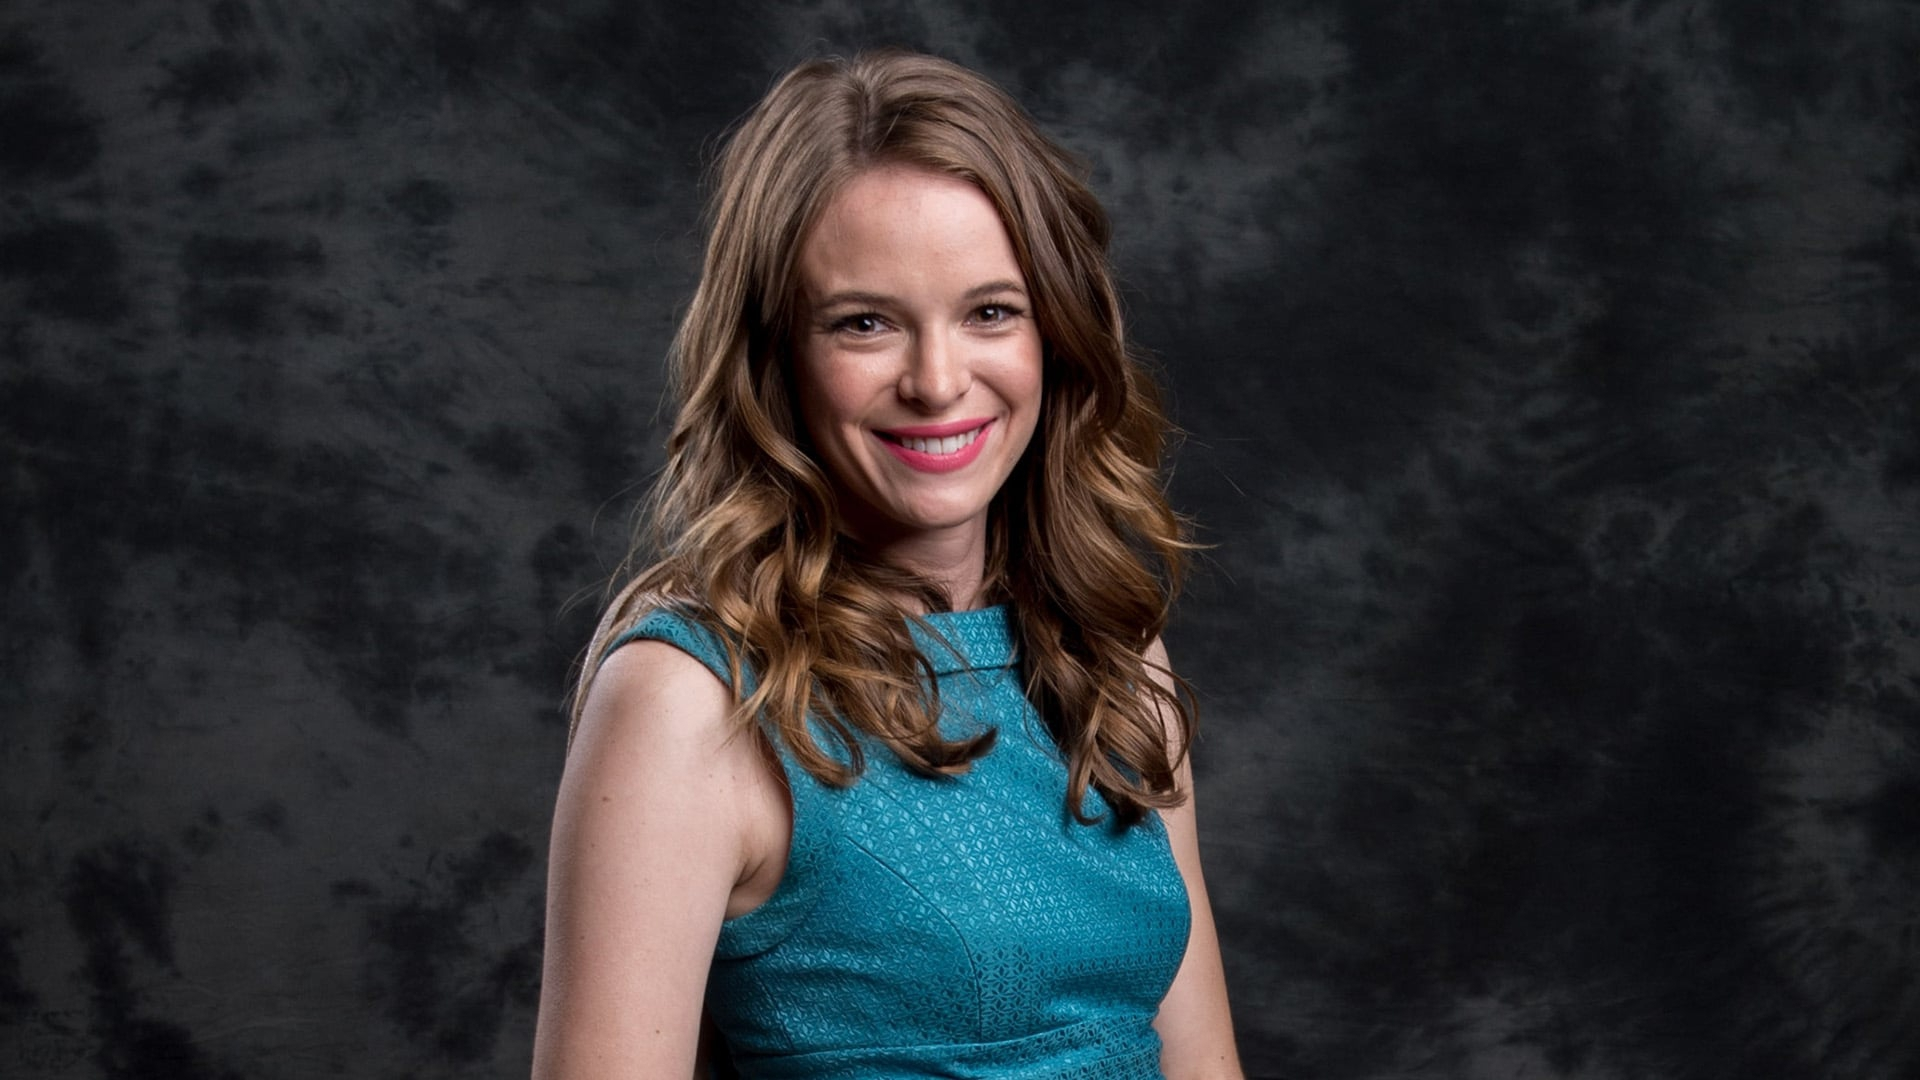 Danielle Panabaker Hd Background